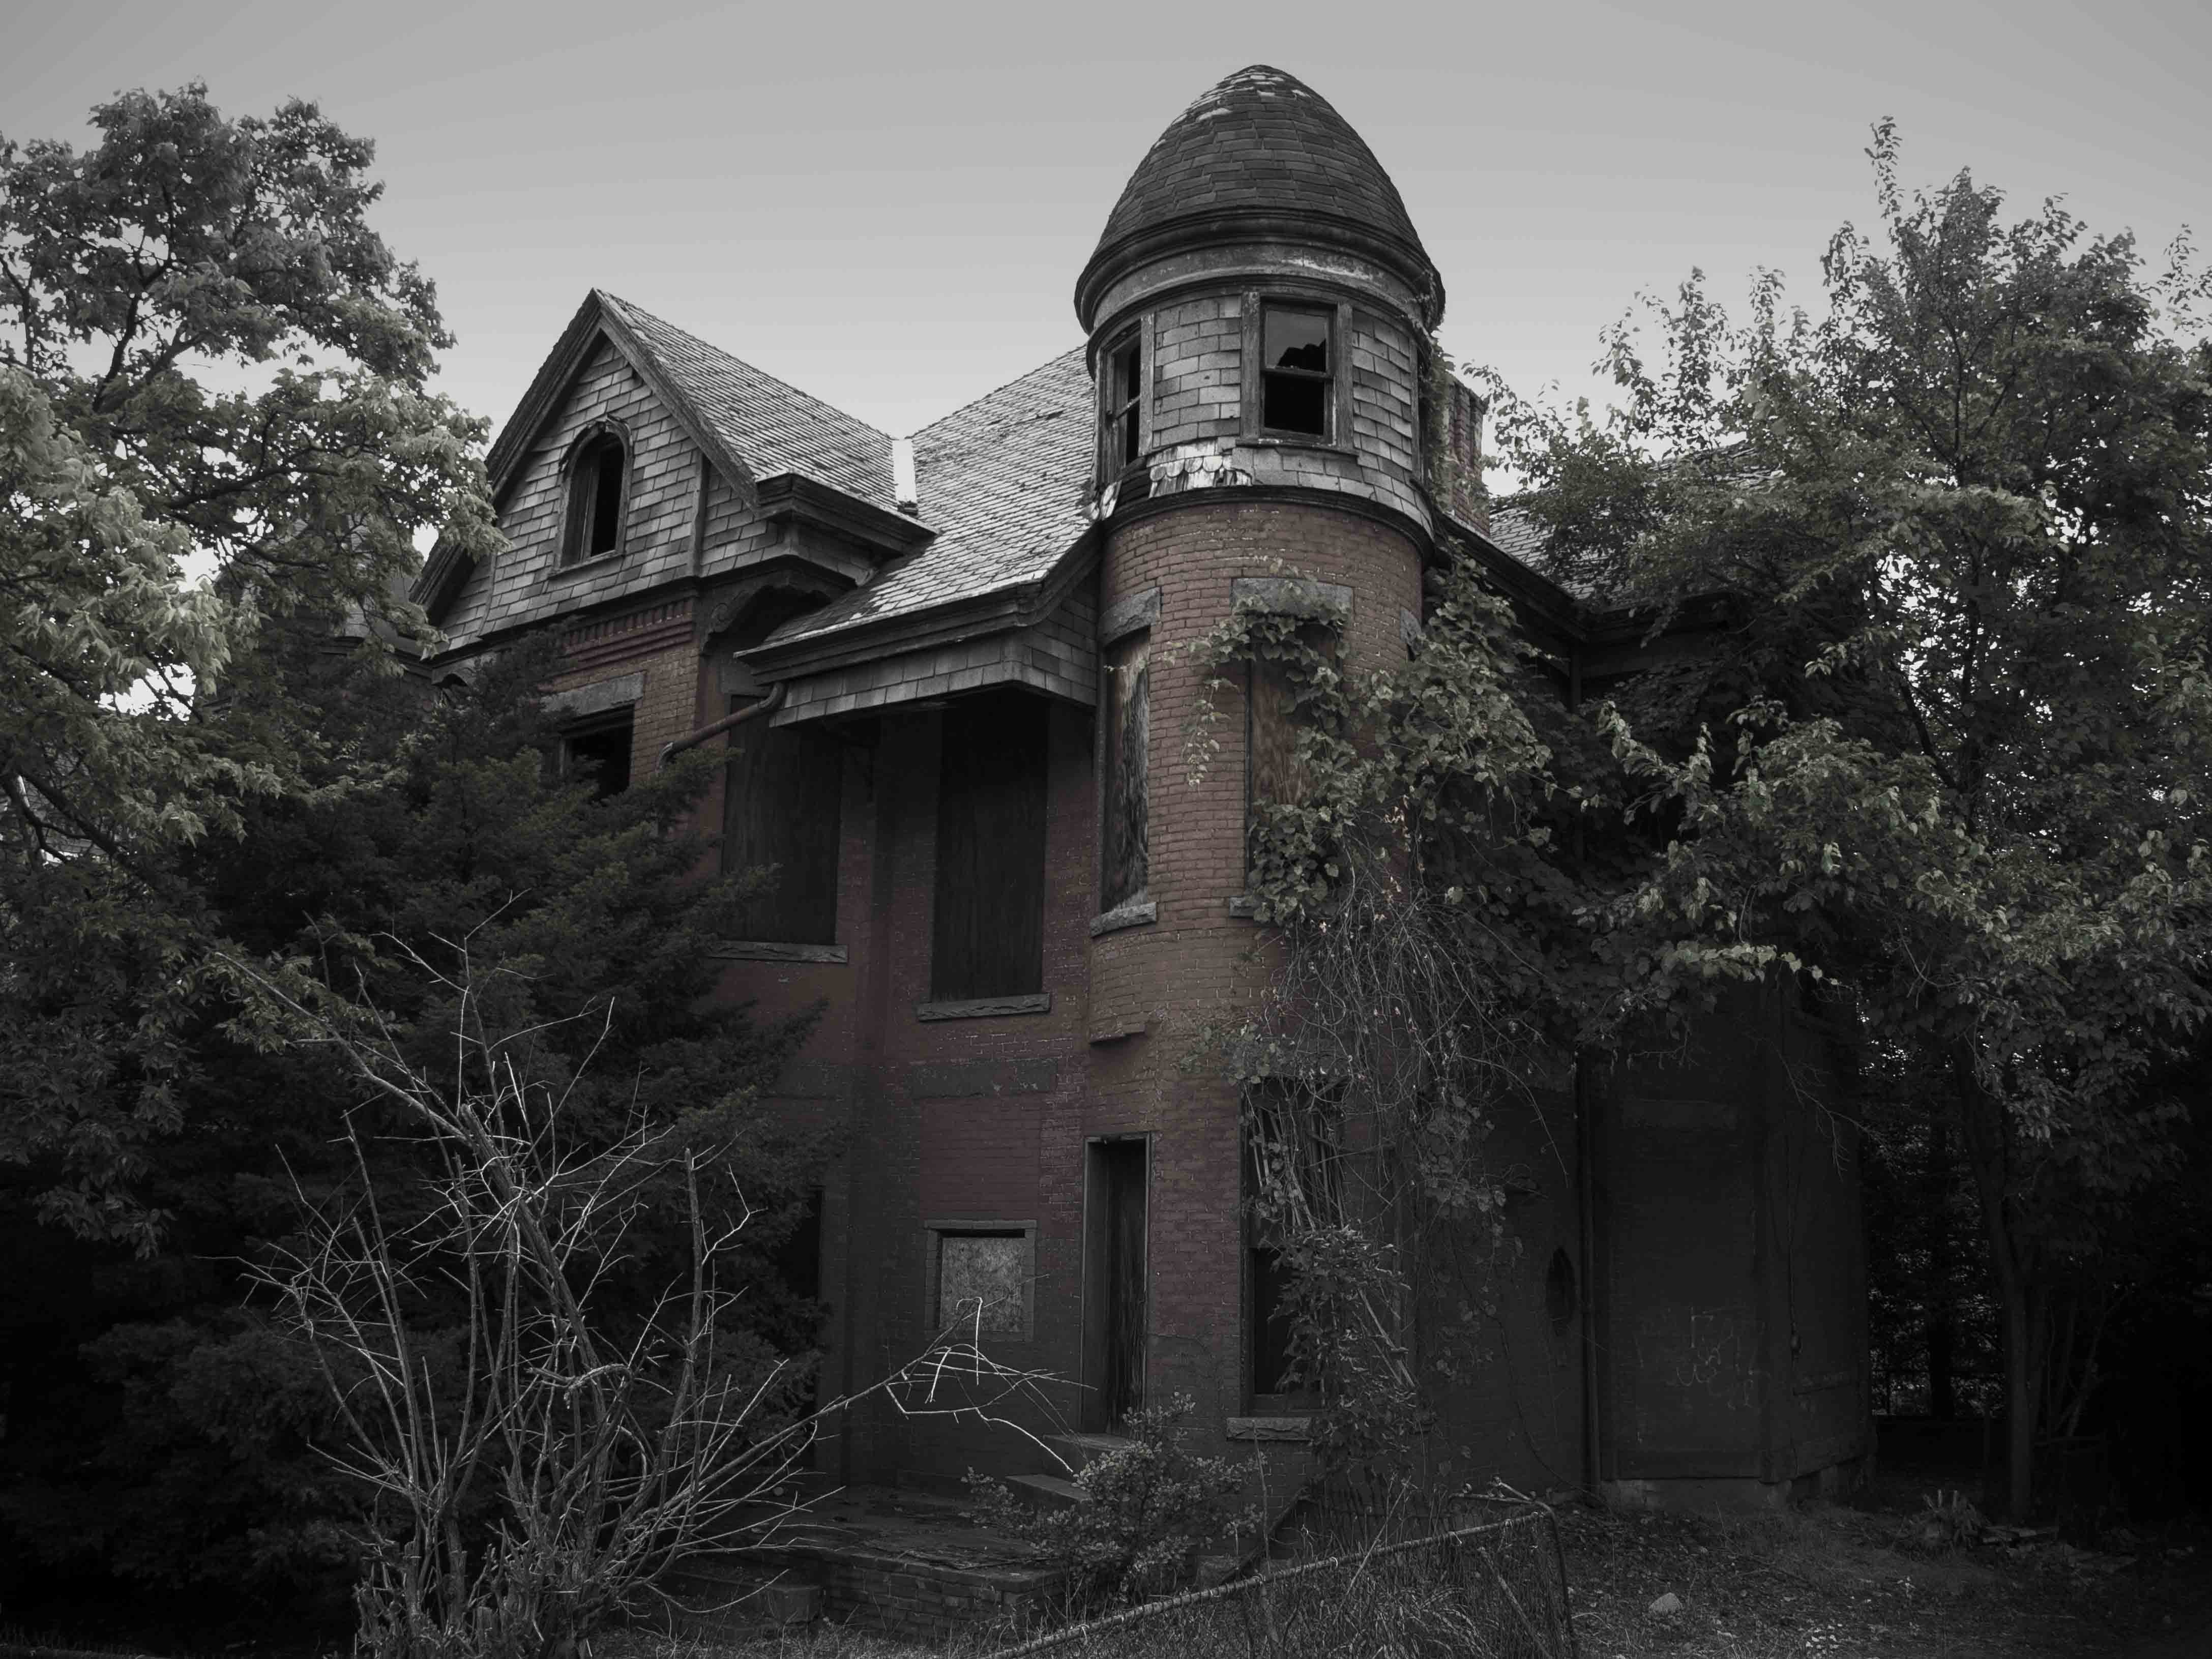 """This haunted house, called the Baily Mansion, was the inspiration for the TV series """"American Horror Story."""" Its actual location is Hartford, Connecticut."""